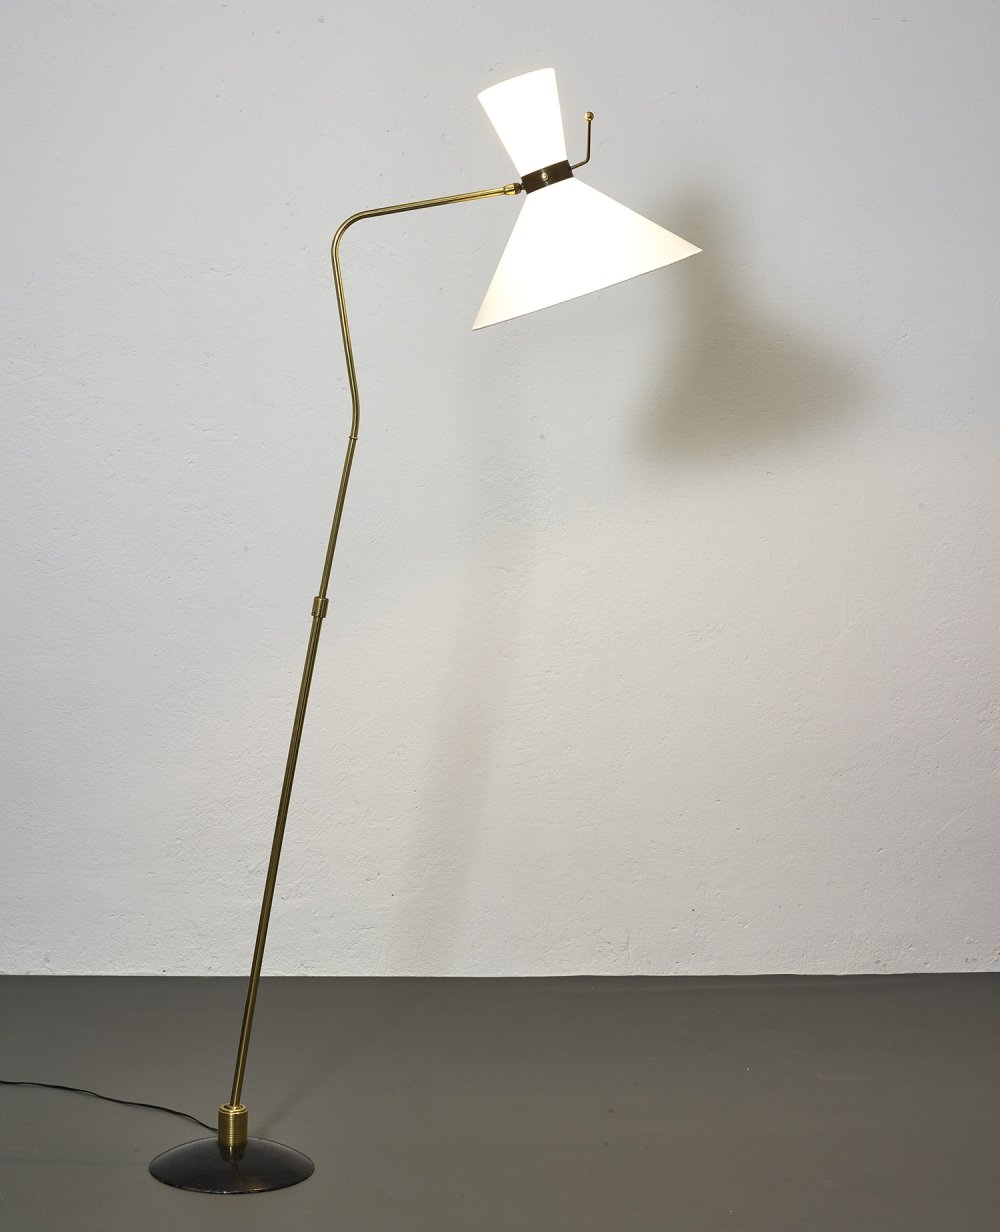 Floor lamp by Maison Arlus, 1950